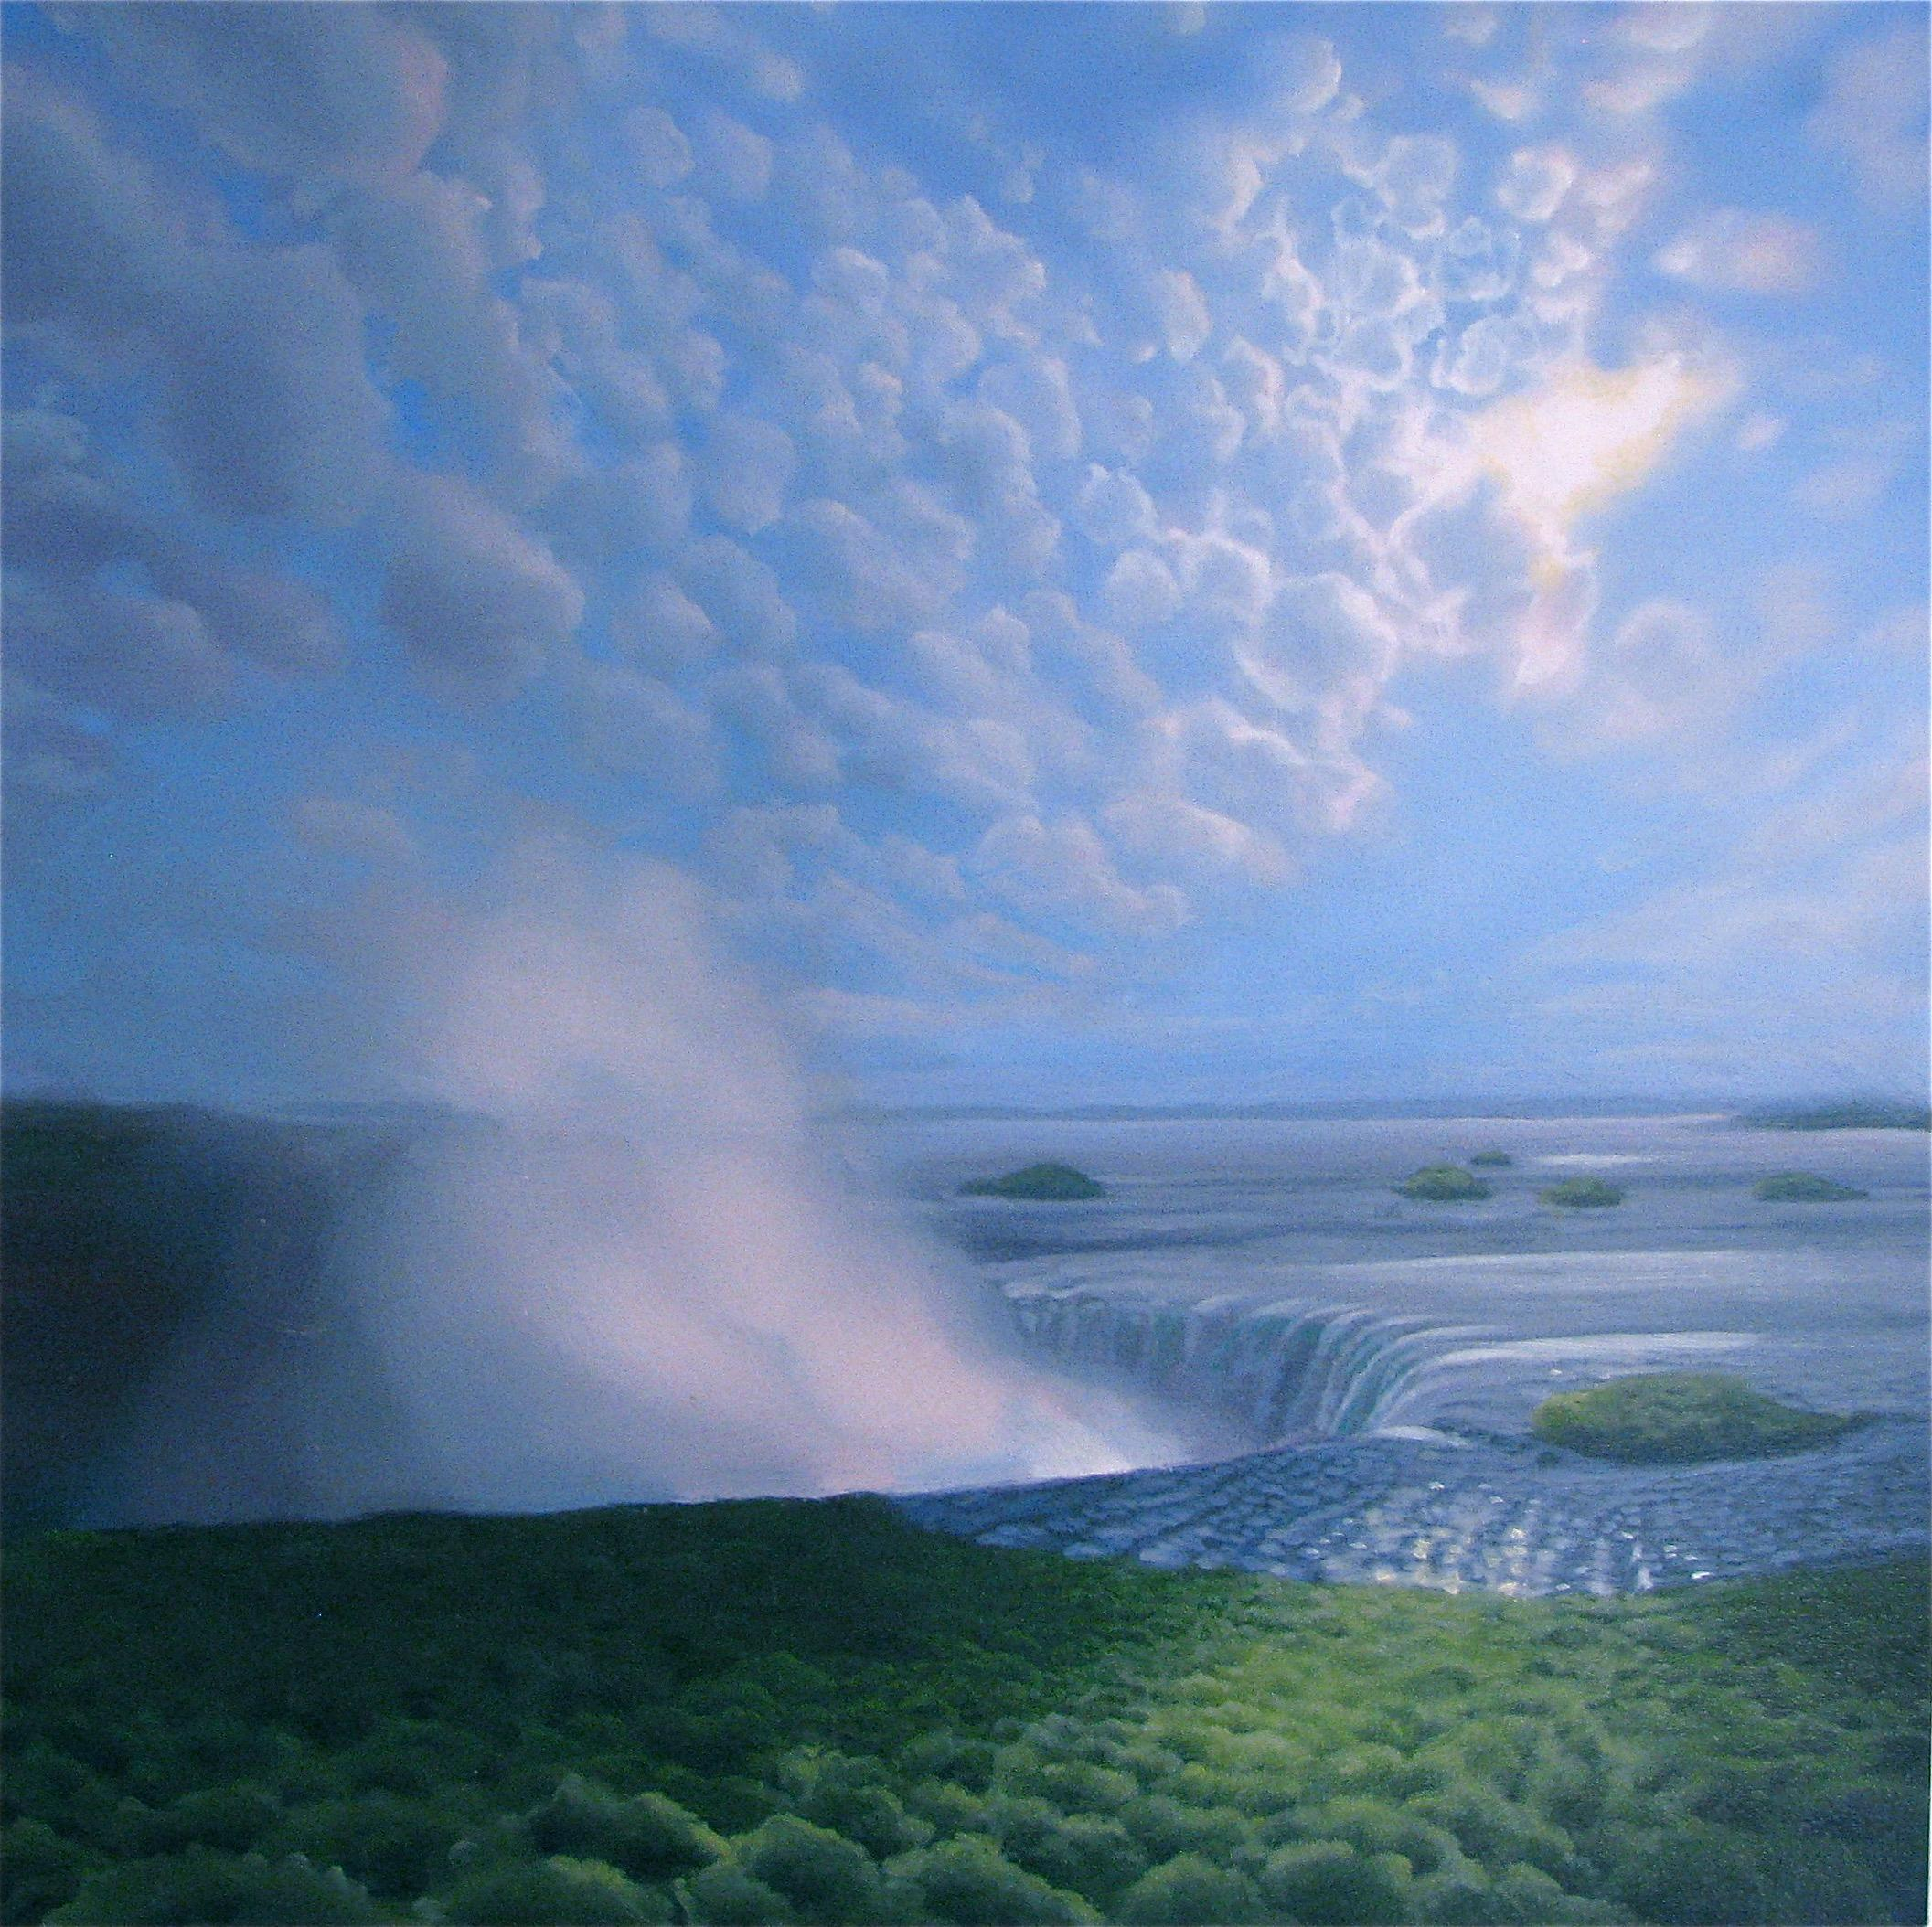 """""""Waterfall, Spray, Clouds""""  Small Landscape/Waterscape Sky with Sun"""